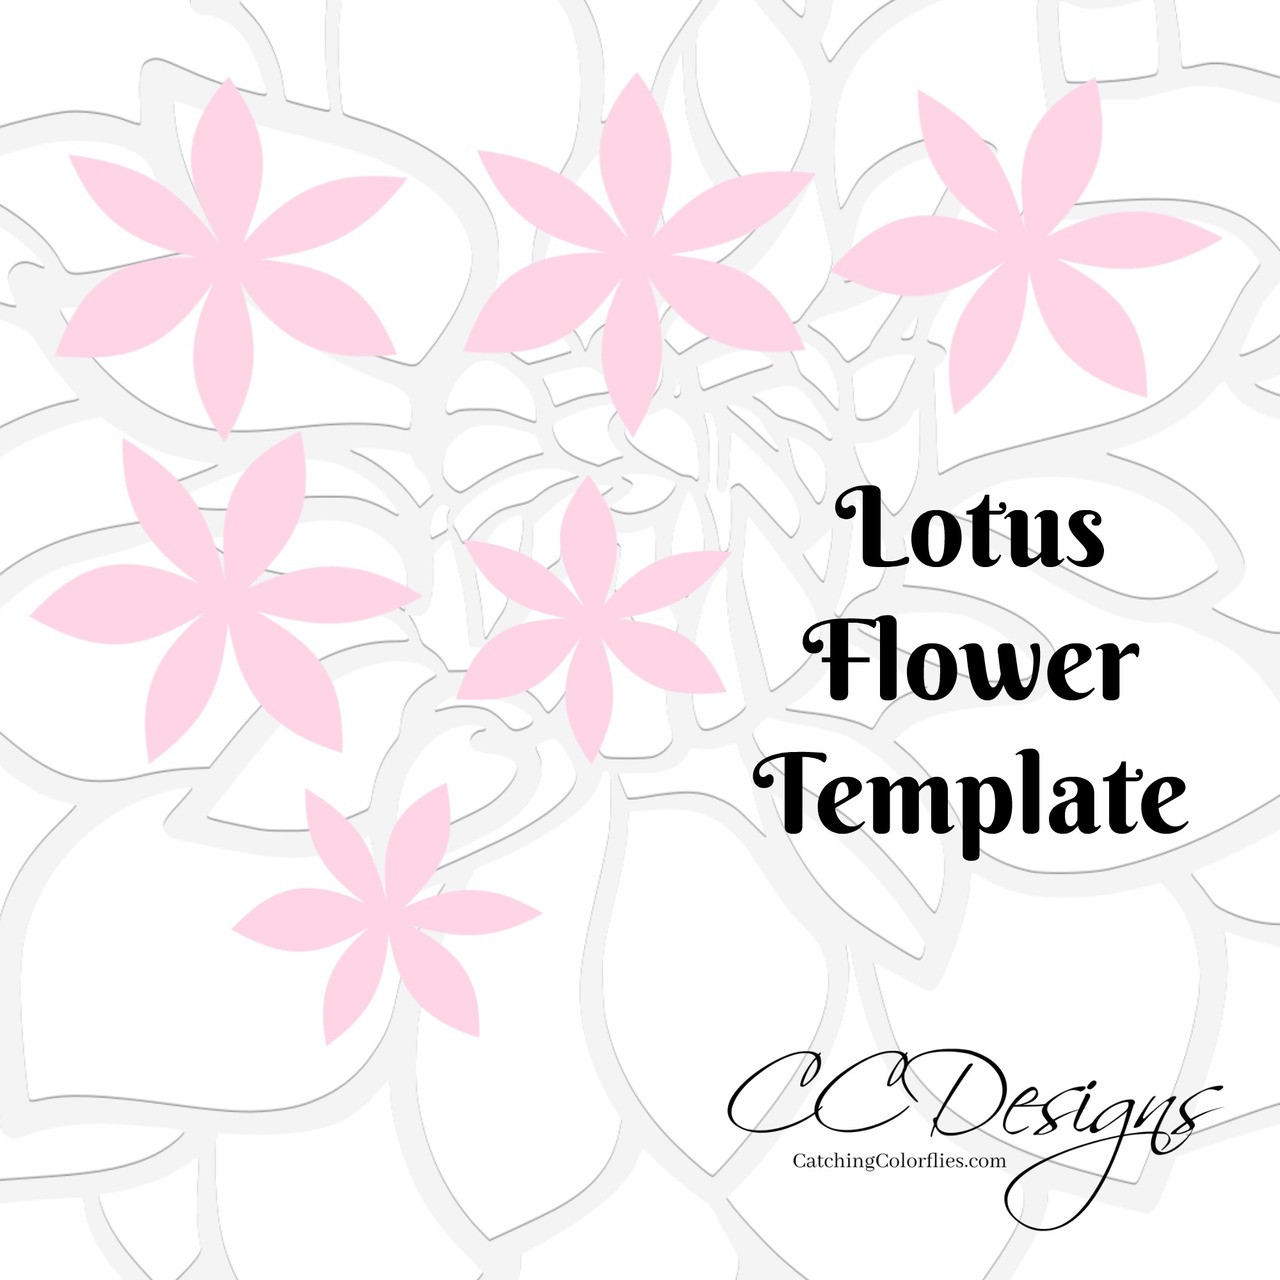 lotus style paper flower templates catching colorflies